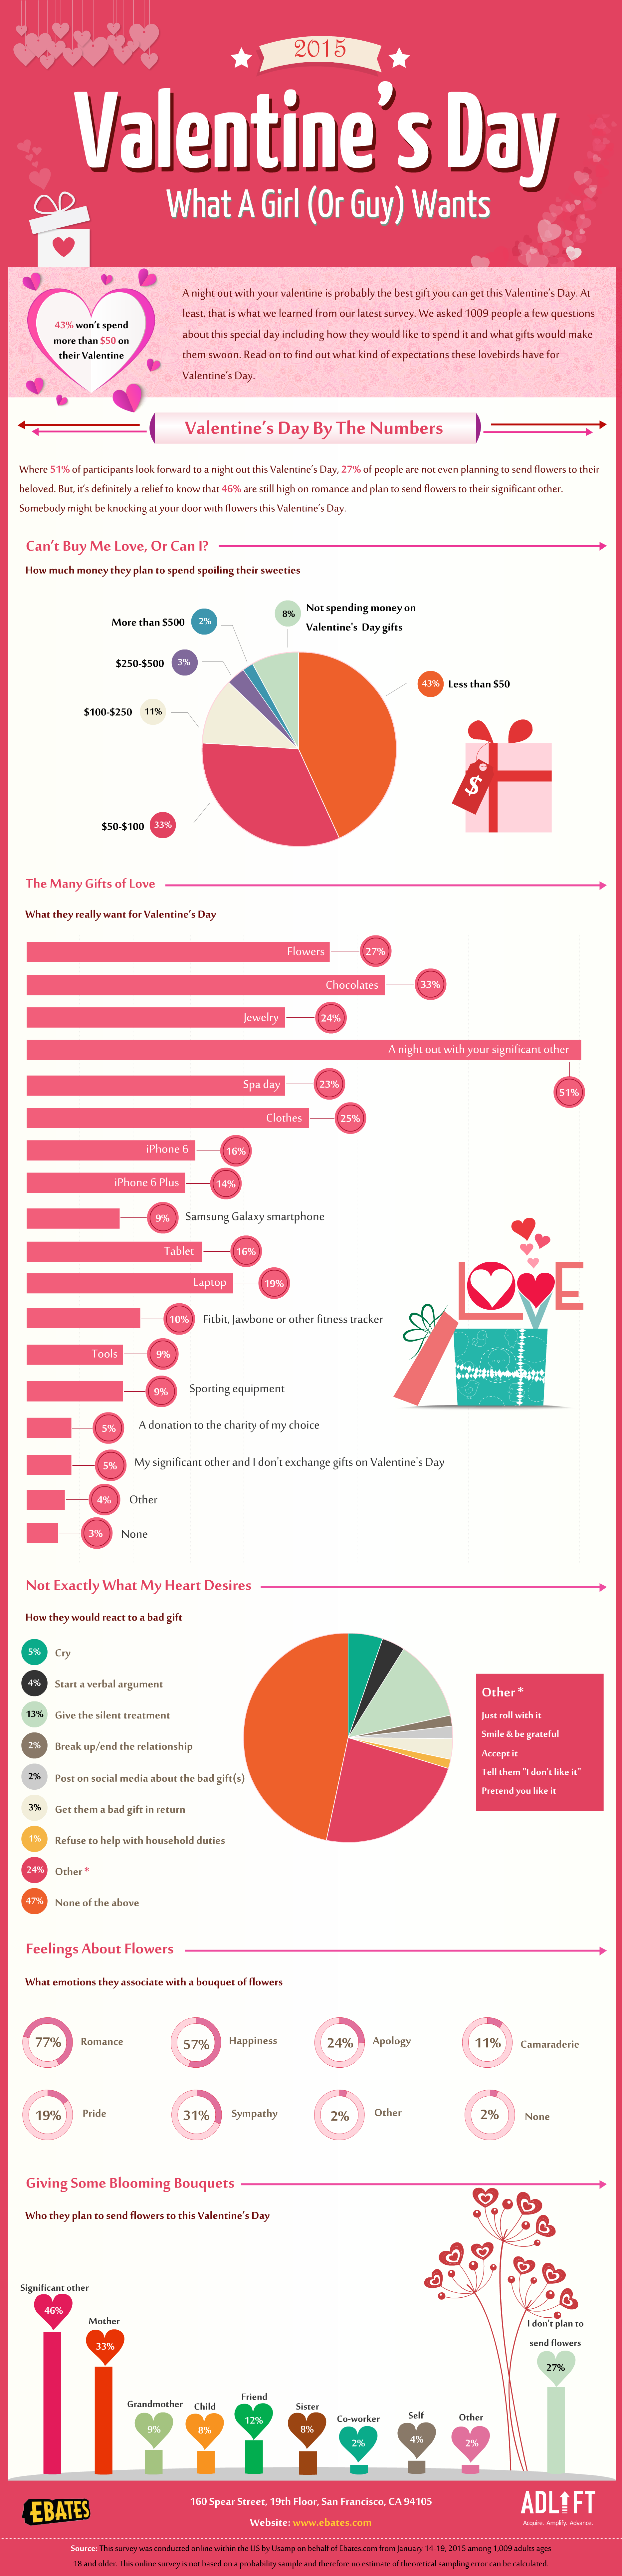 facts about valentines day ever wondered how men women spent the love fest visually valentines